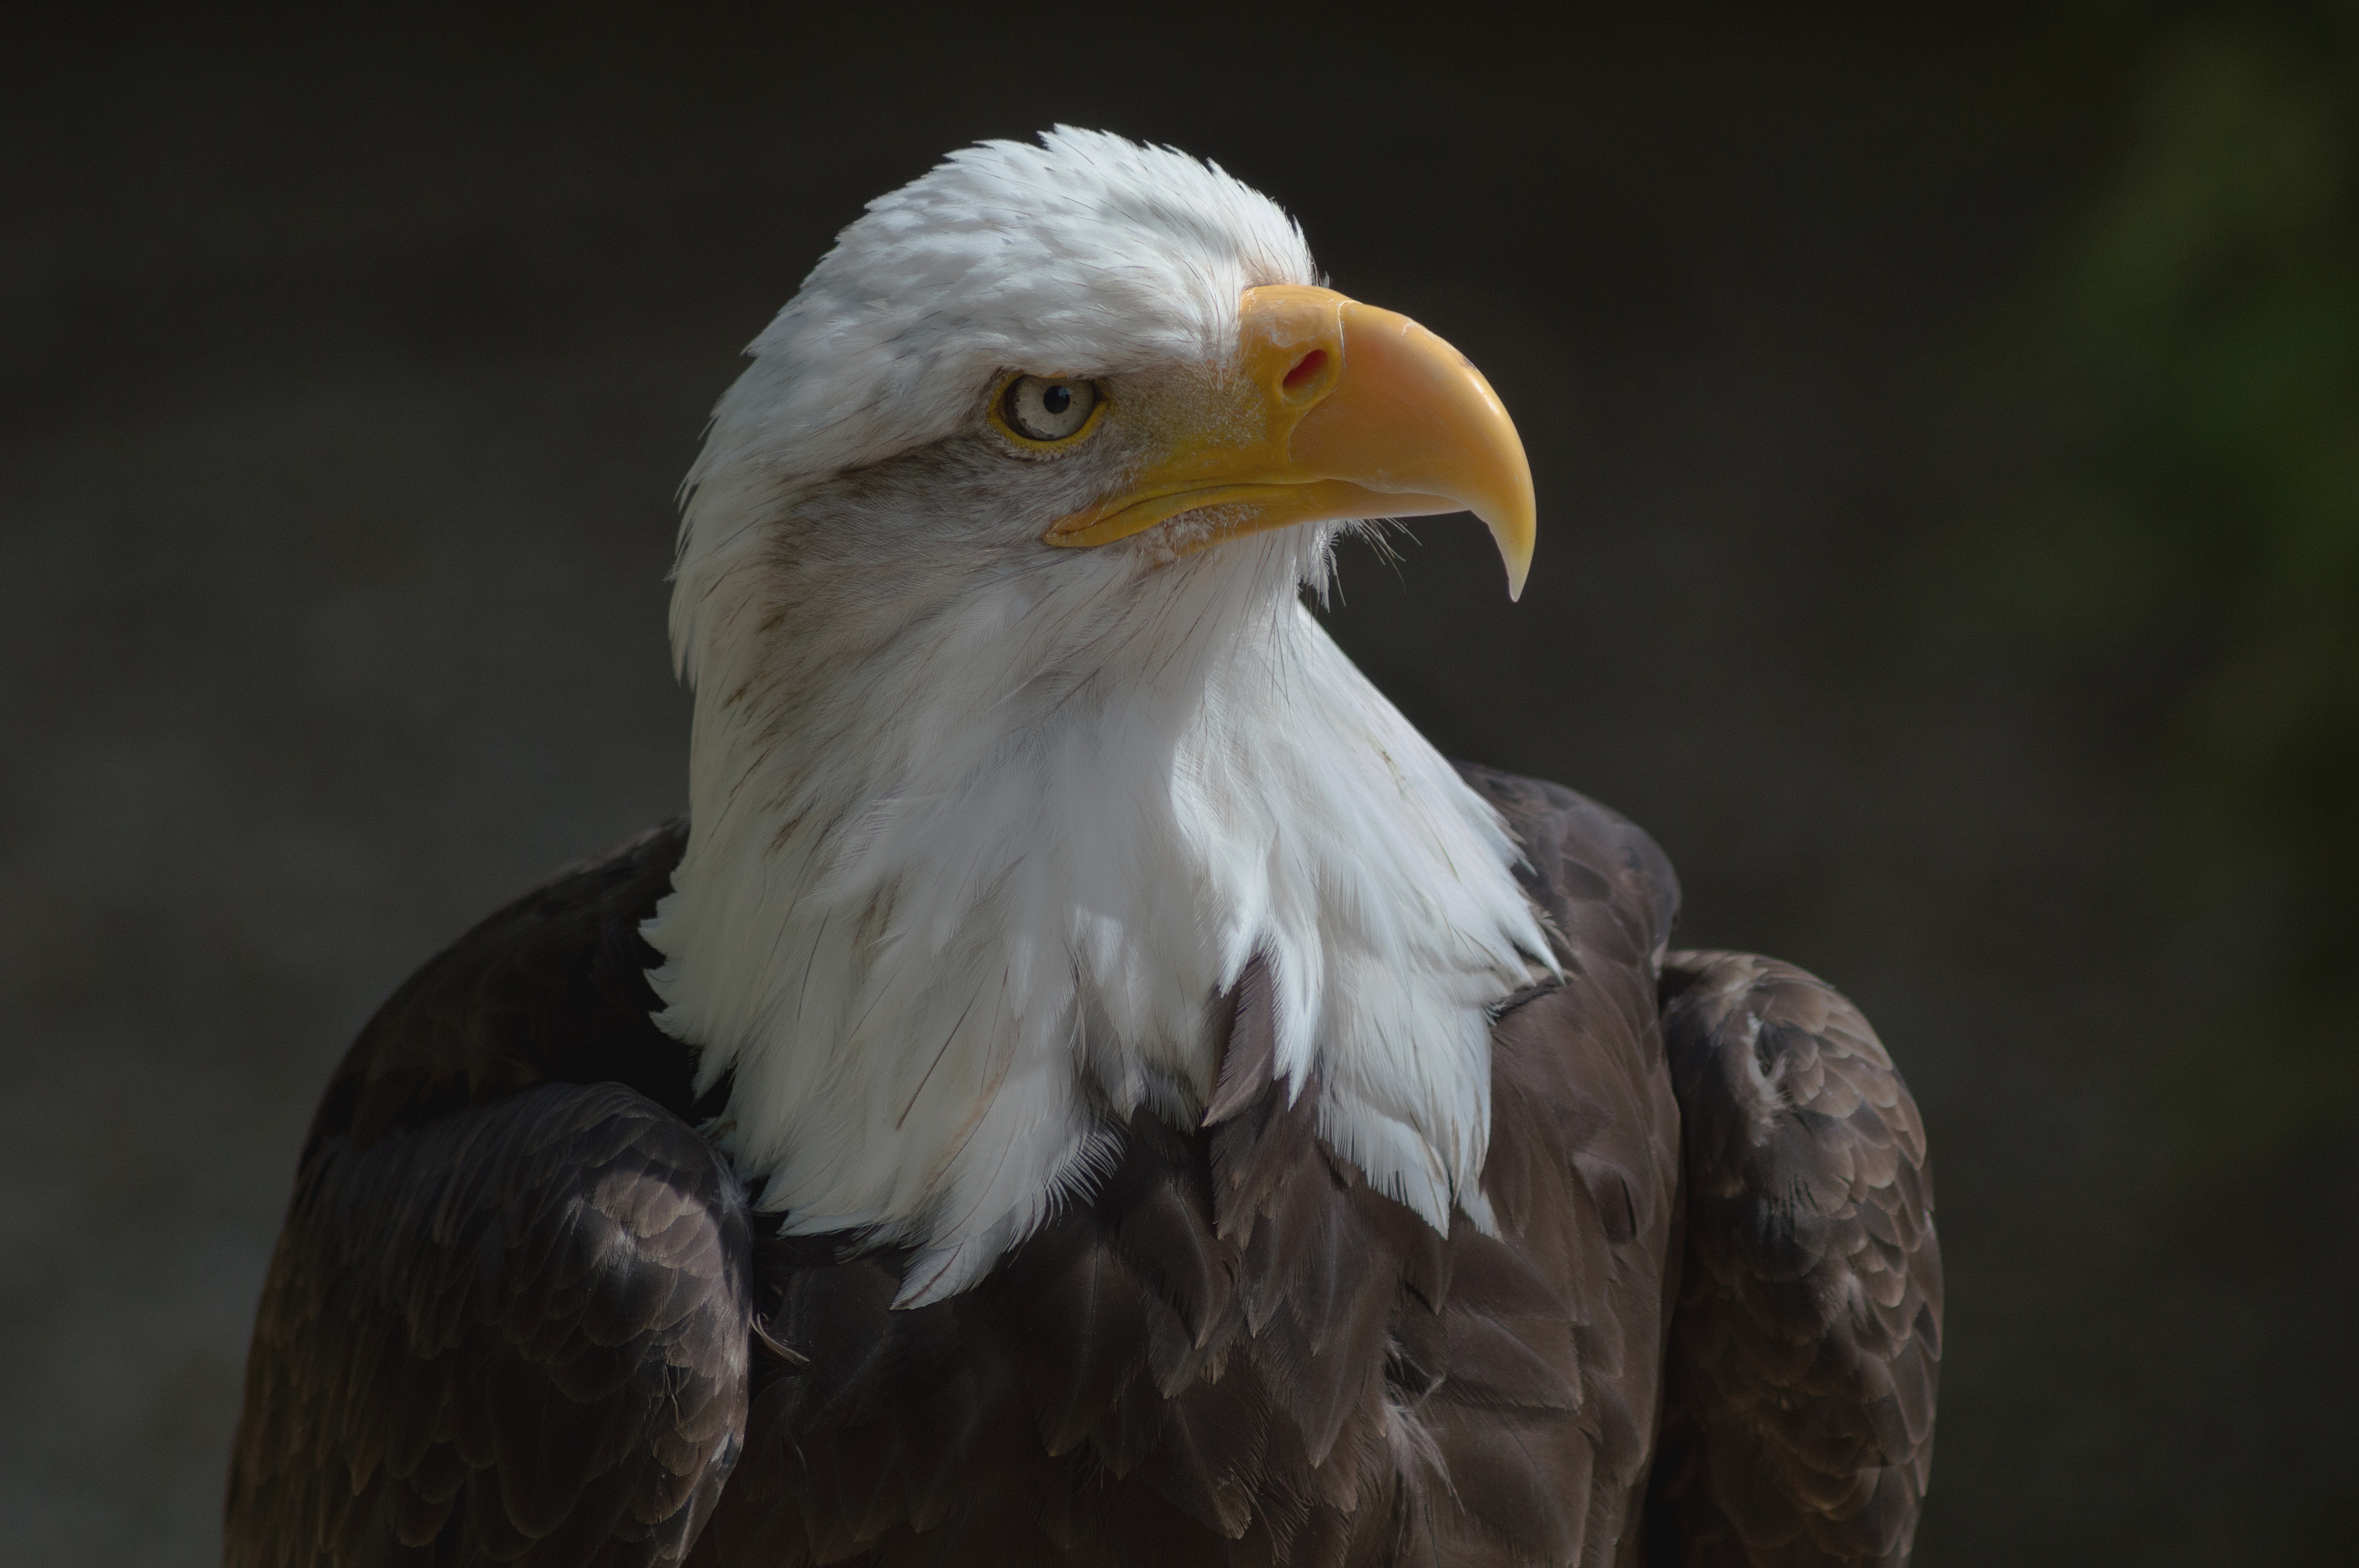 Eagle 7 1 license file | The New EAGLE 7 7 Out Now!  2019-04-01